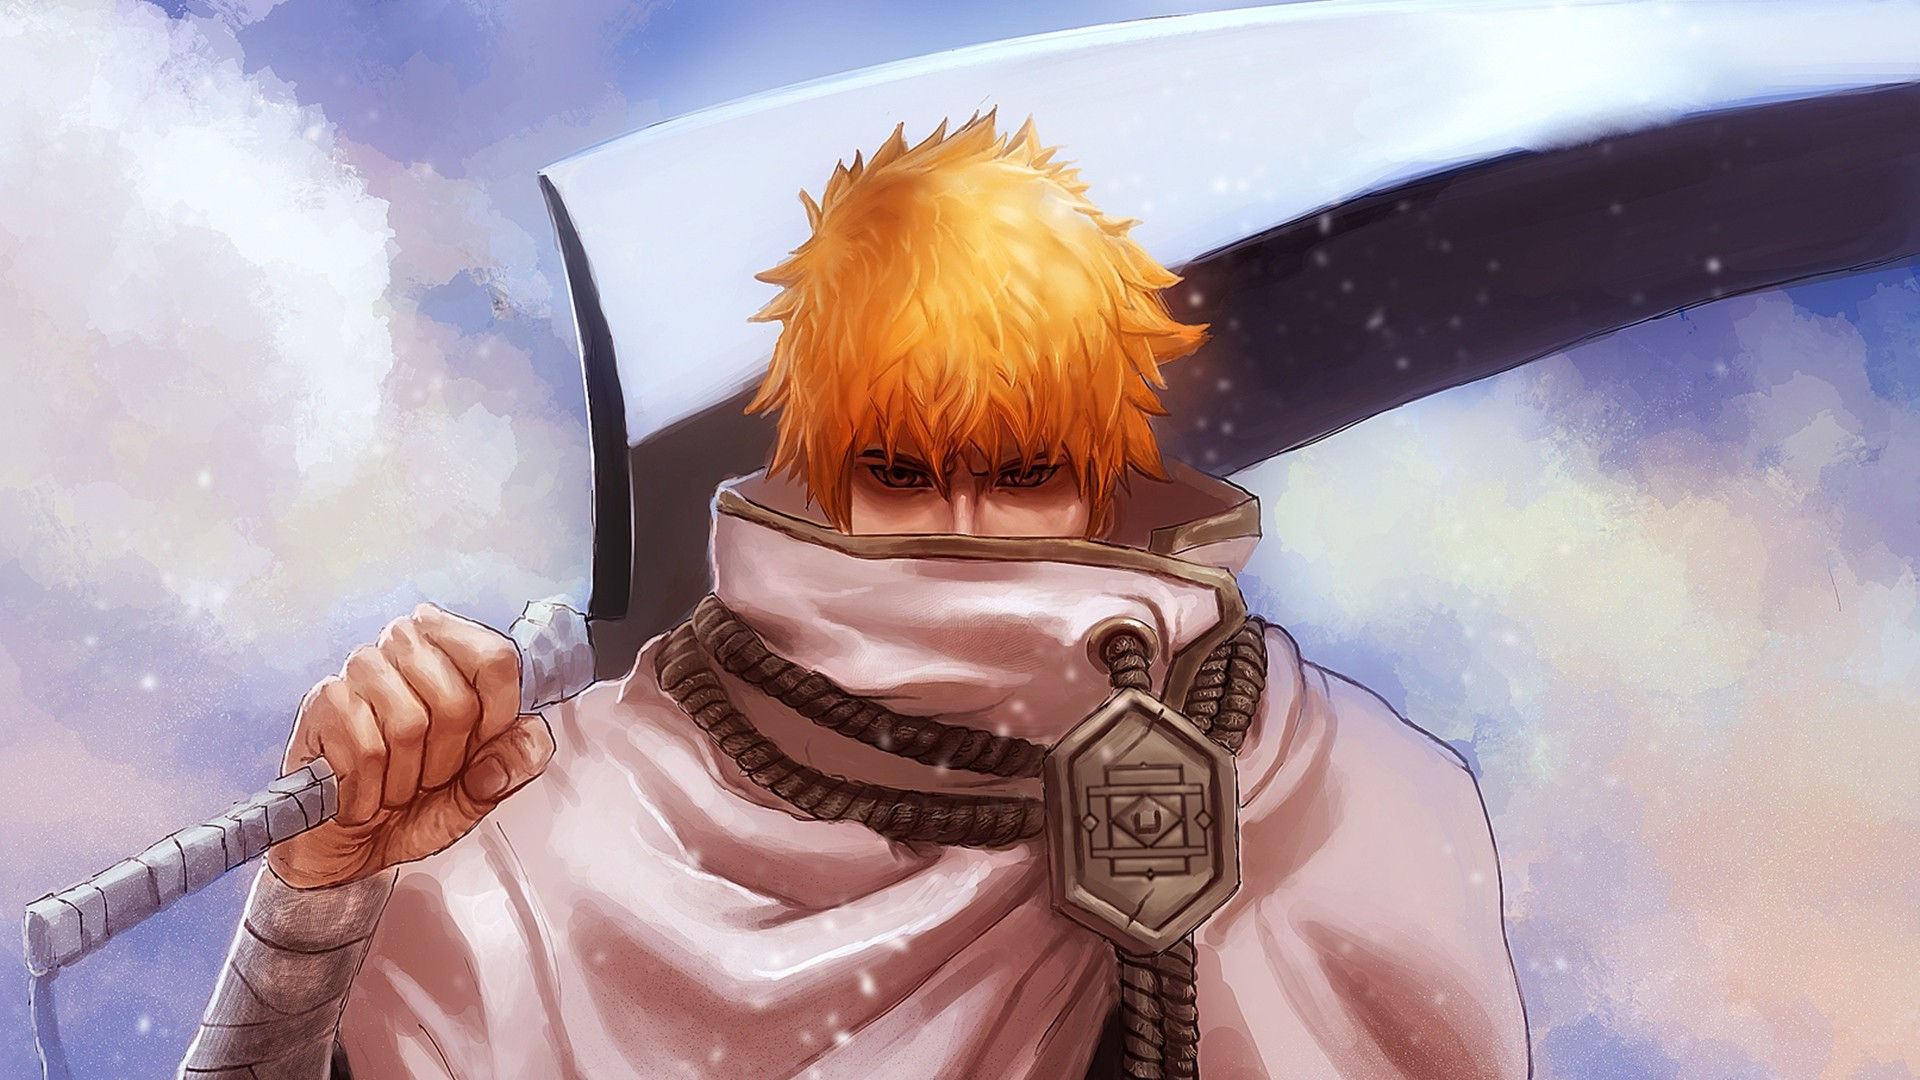 Bleach hd wallpaper 71 images 1920x1080 bleach hd images bleach hd wallpapers spring doughty for mobile and desktop voltagebd Choice Image